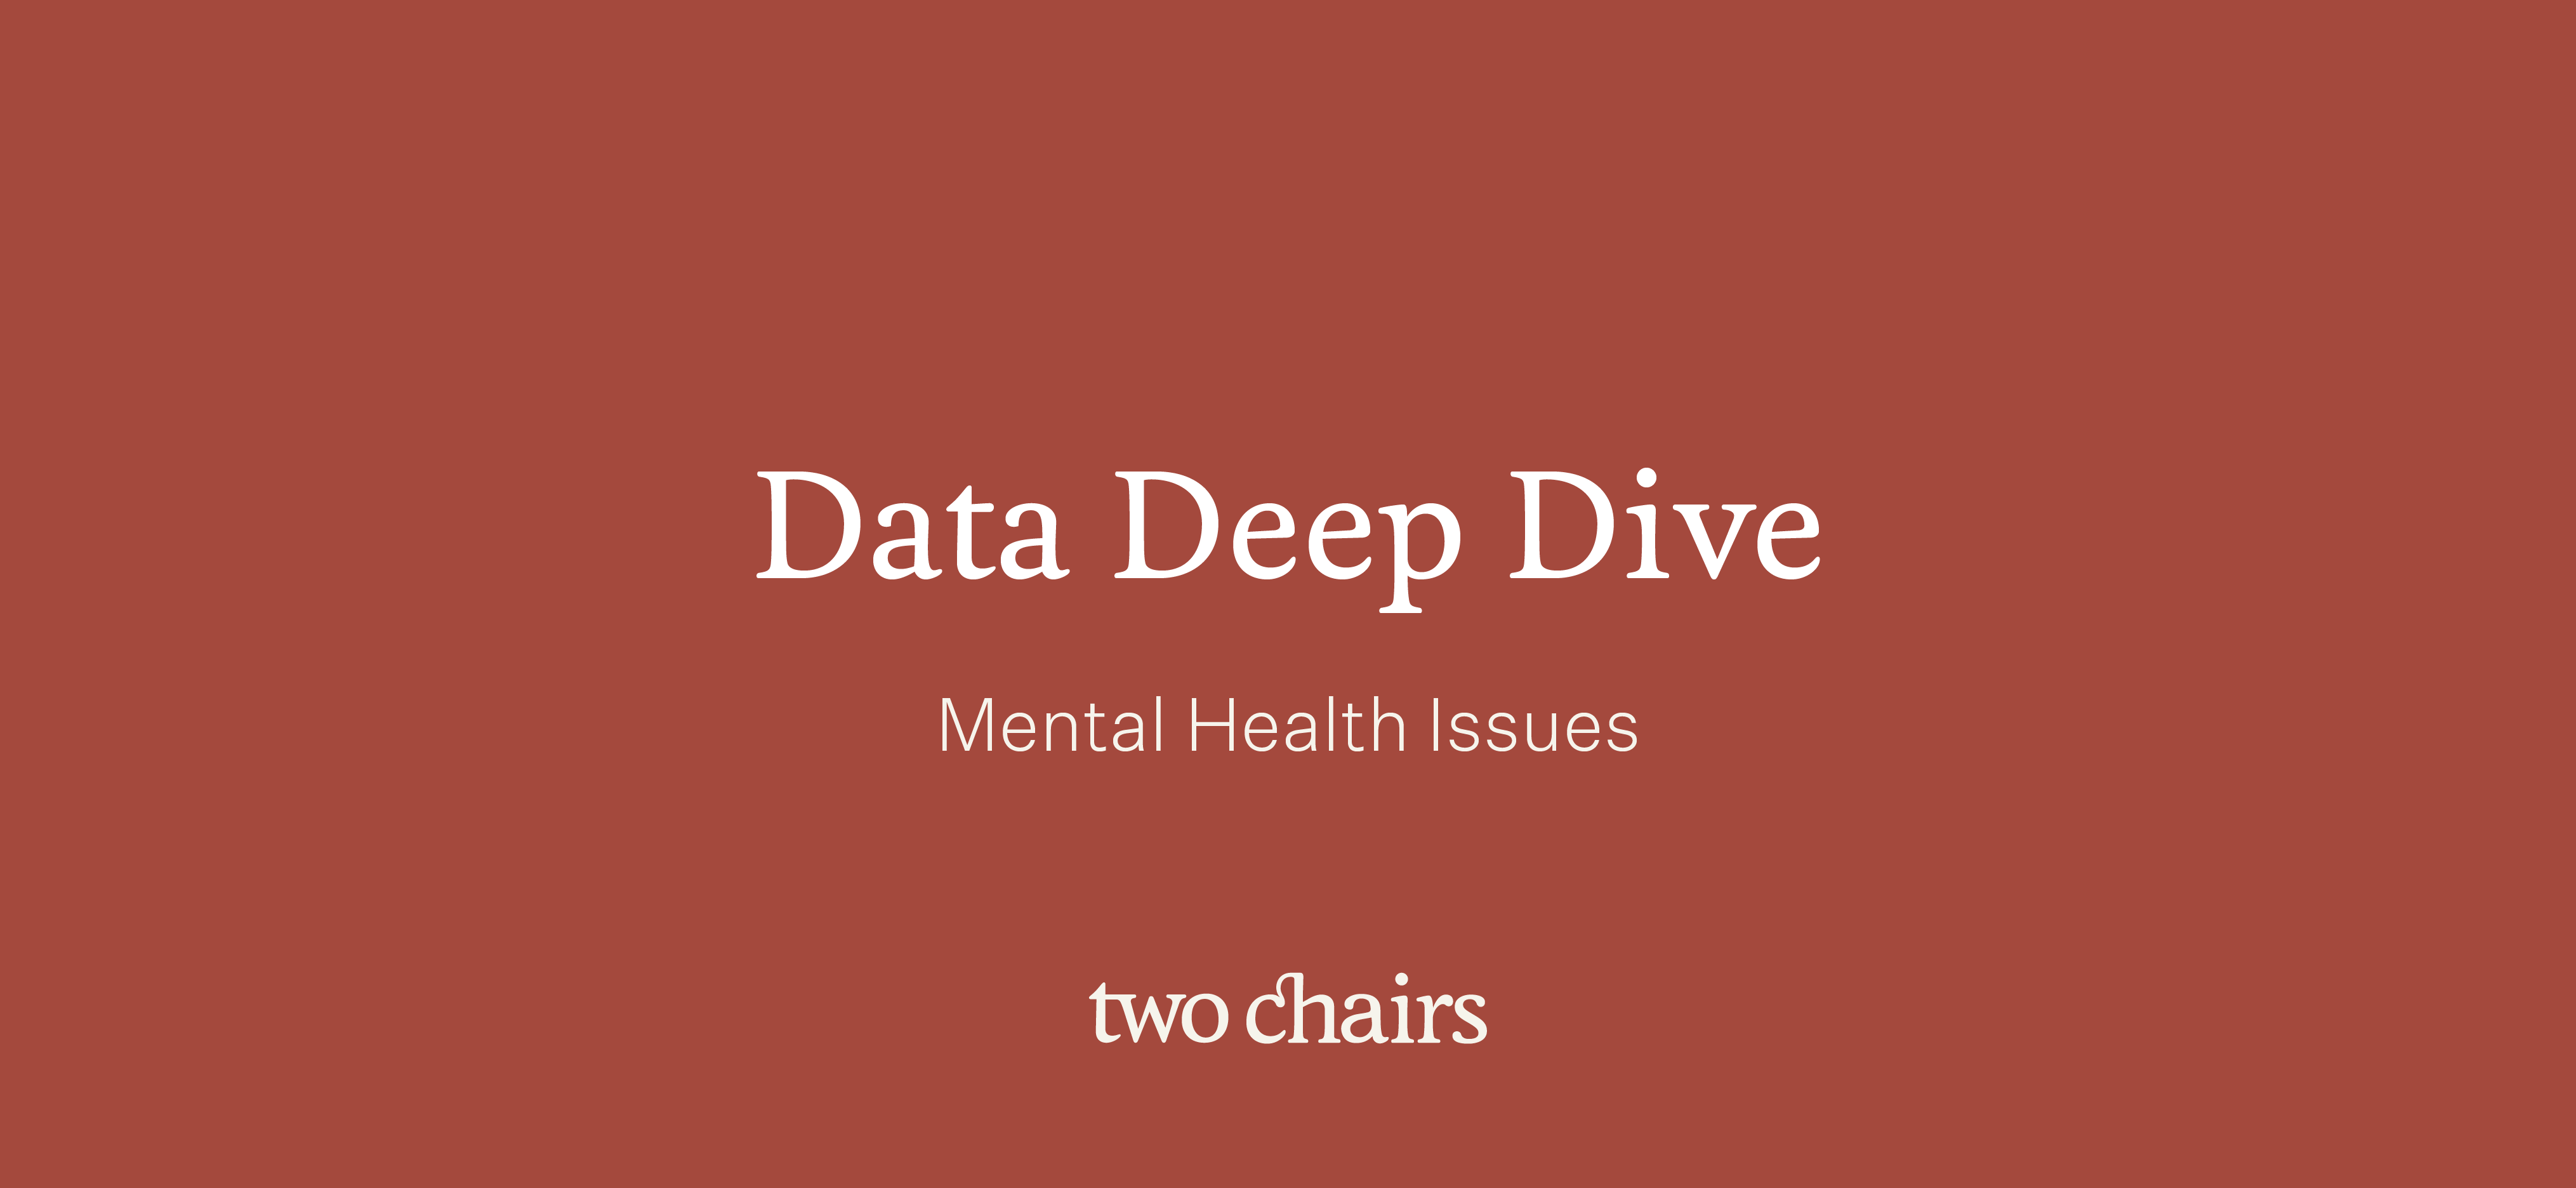 Data Deep Dive: The Prevalence of Mental Health Issues